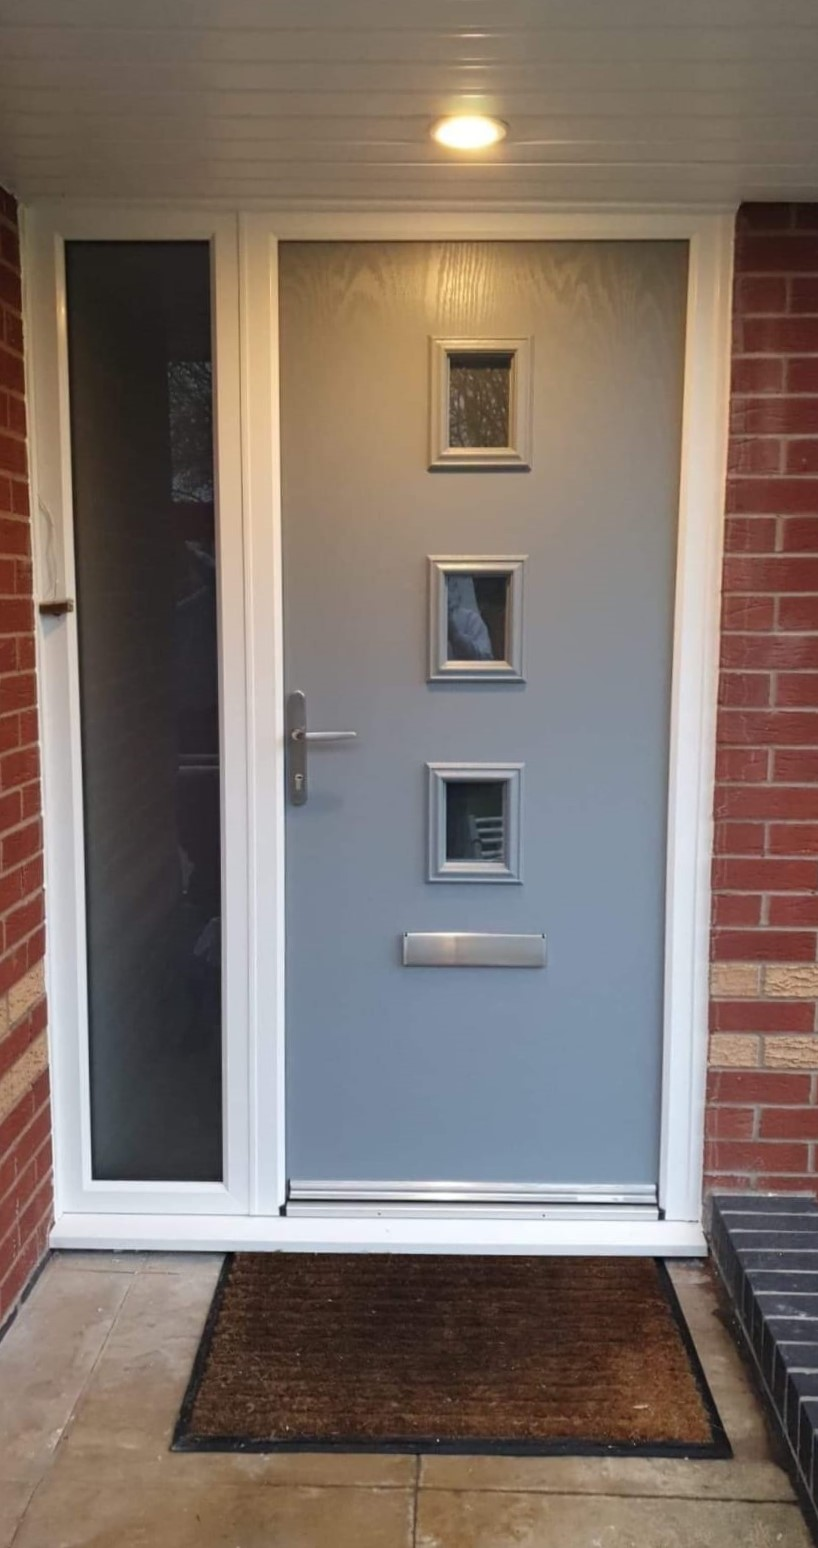 Light Grey Composite Door Image 2020-01-03 at 15.18.20.jp